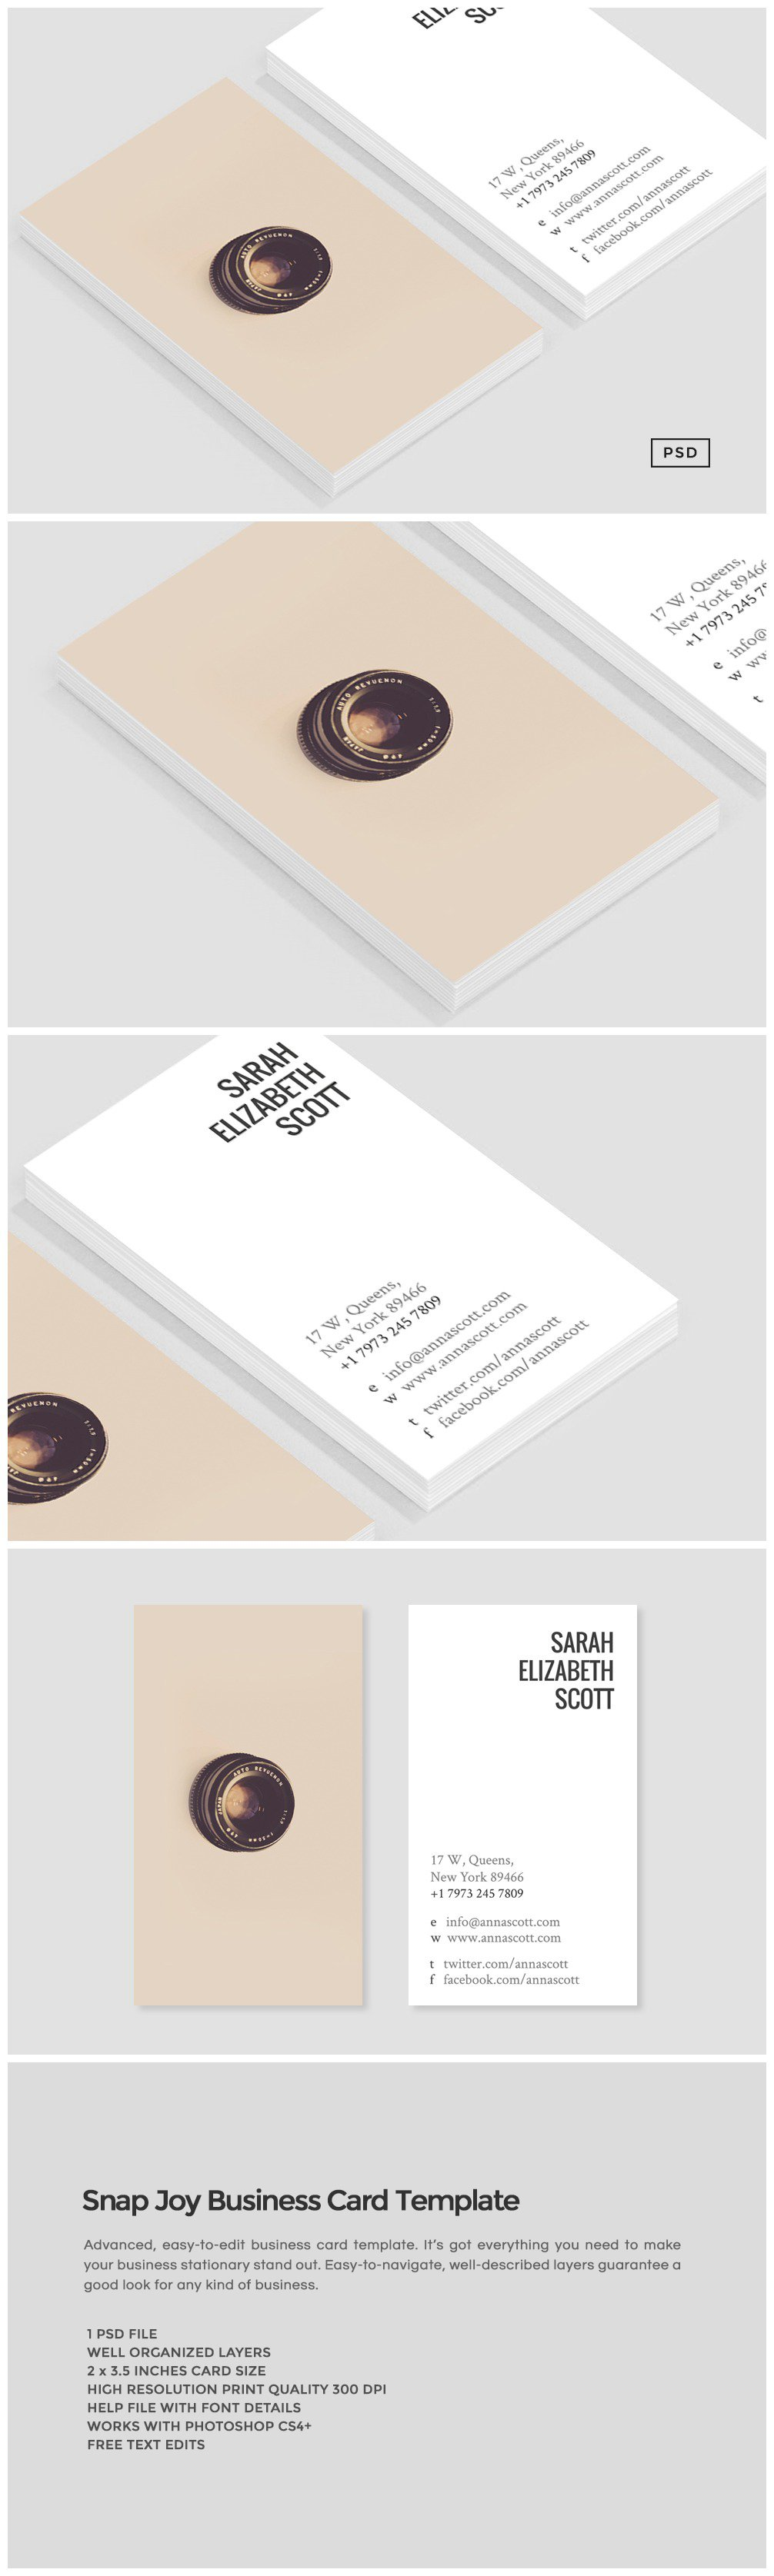 Snap joy business card template business card templates creative snap joy business card template business card templates creative market reheart Images